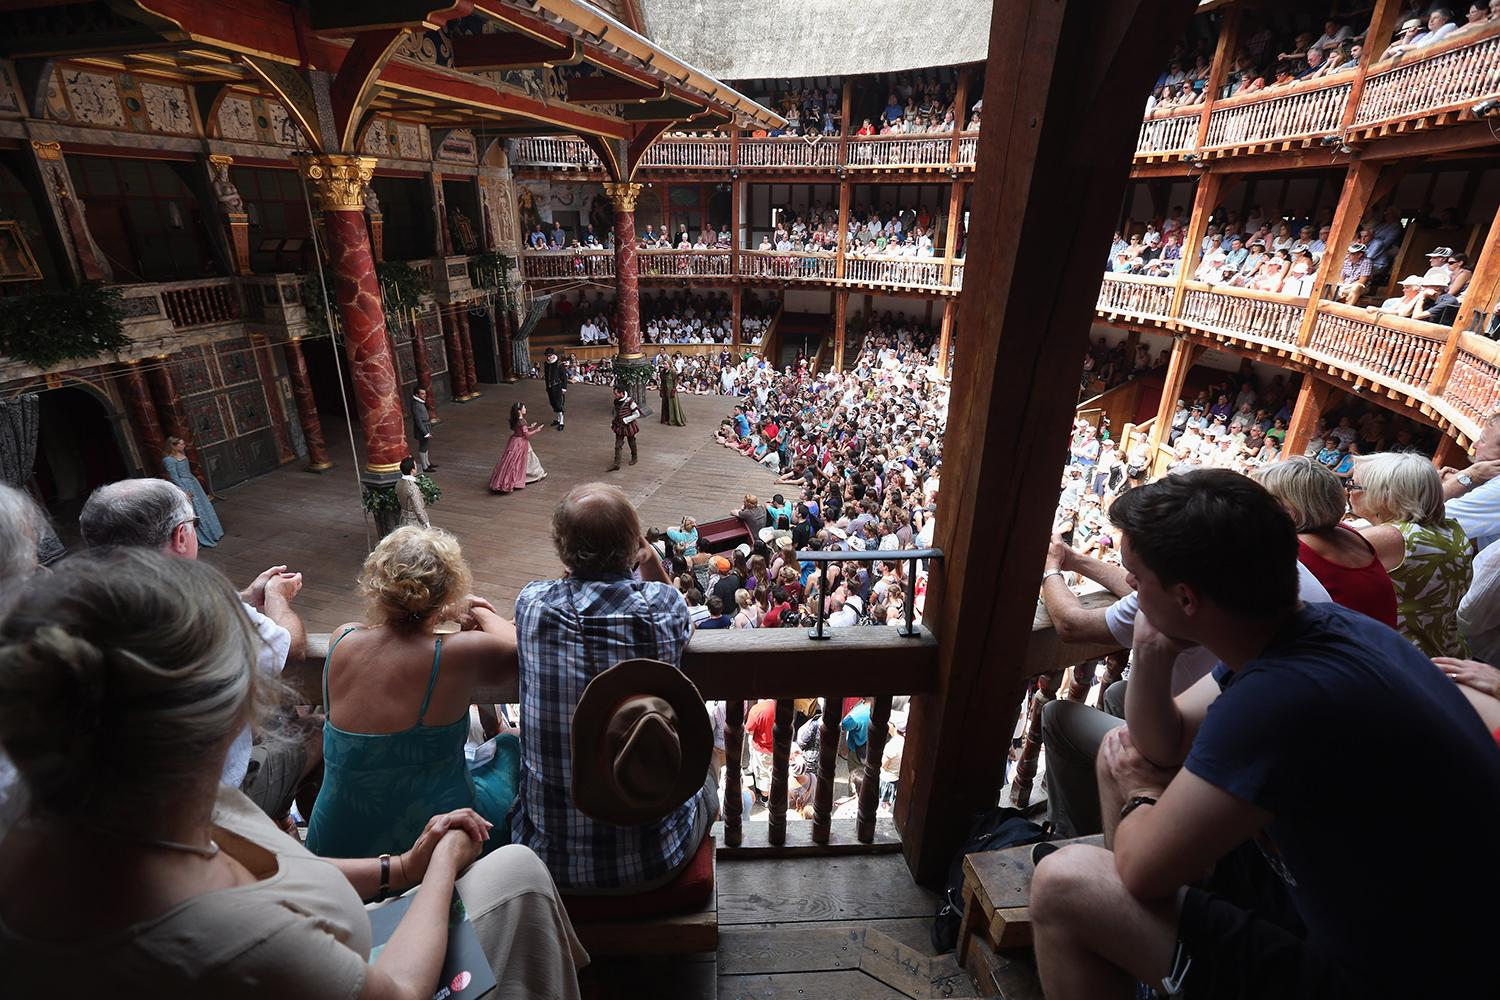 """<p>Audience members watch a production of """"A Midsummer Night's Dream"""" in Shakespeare's Globe Theatre, on the Southbank of the River Thames, in London. (Photo: Oli Scarff/Getty Images) </p>"""